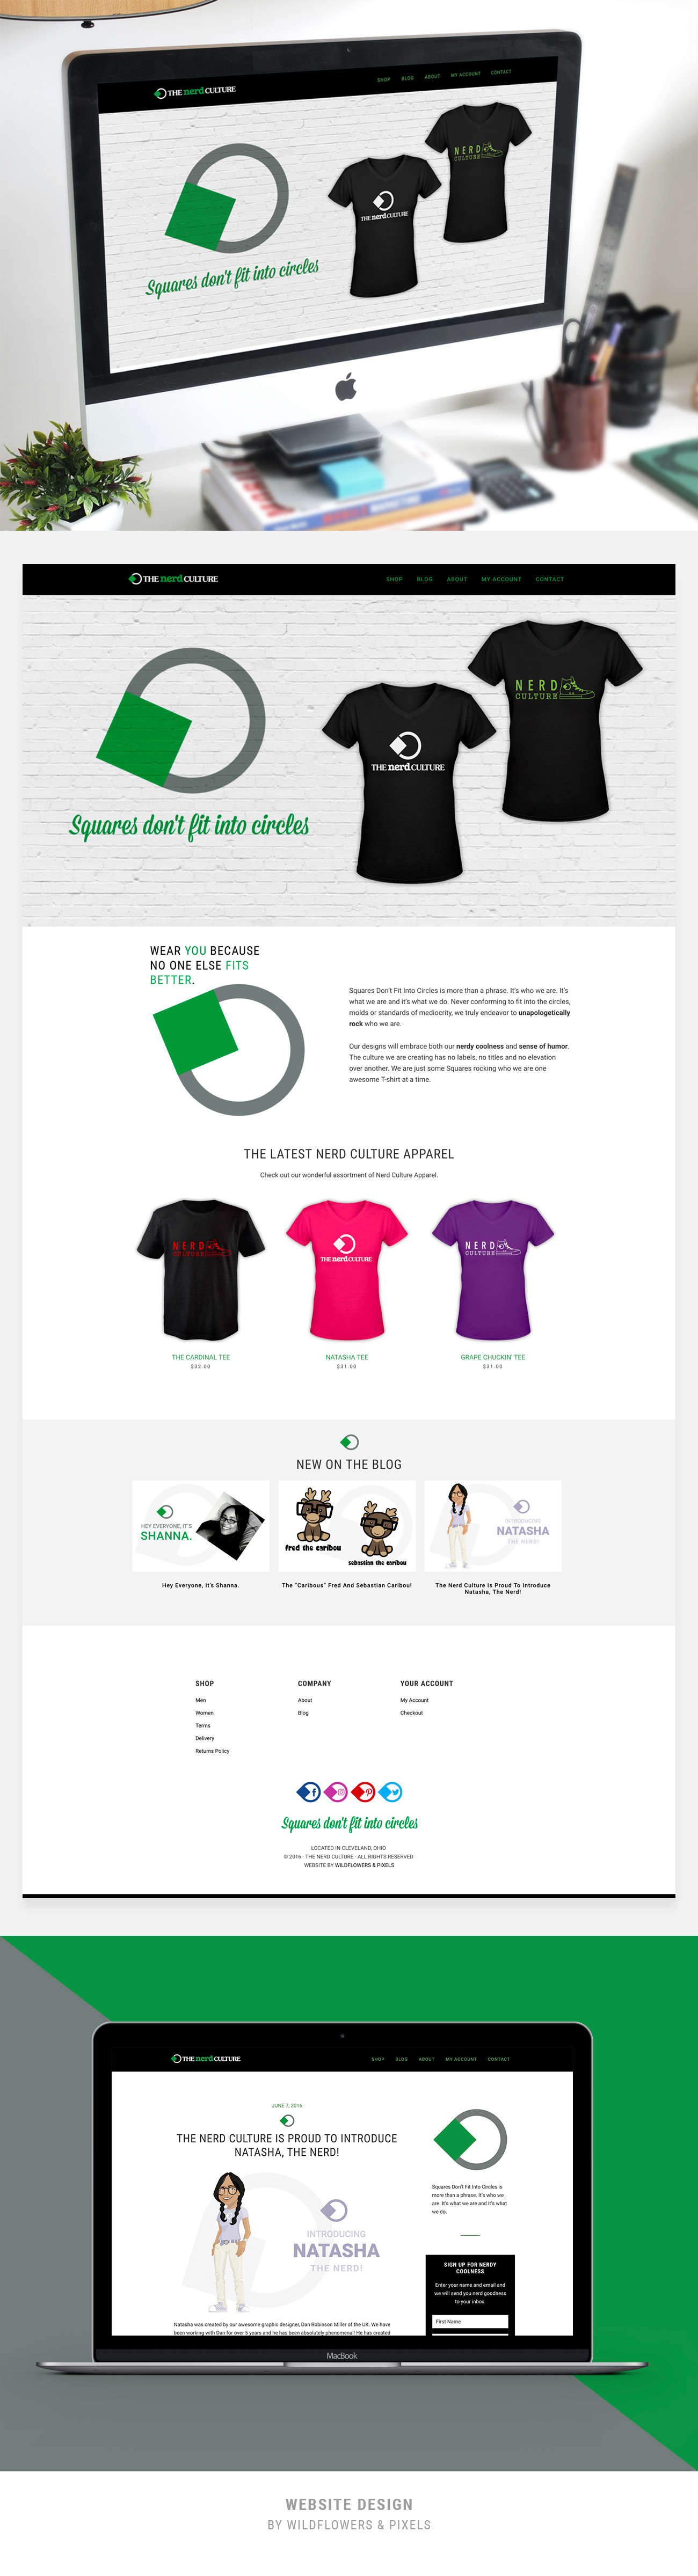 Website Design + Ecommerce For The Nerd Culture by Wildflowers & Pixels